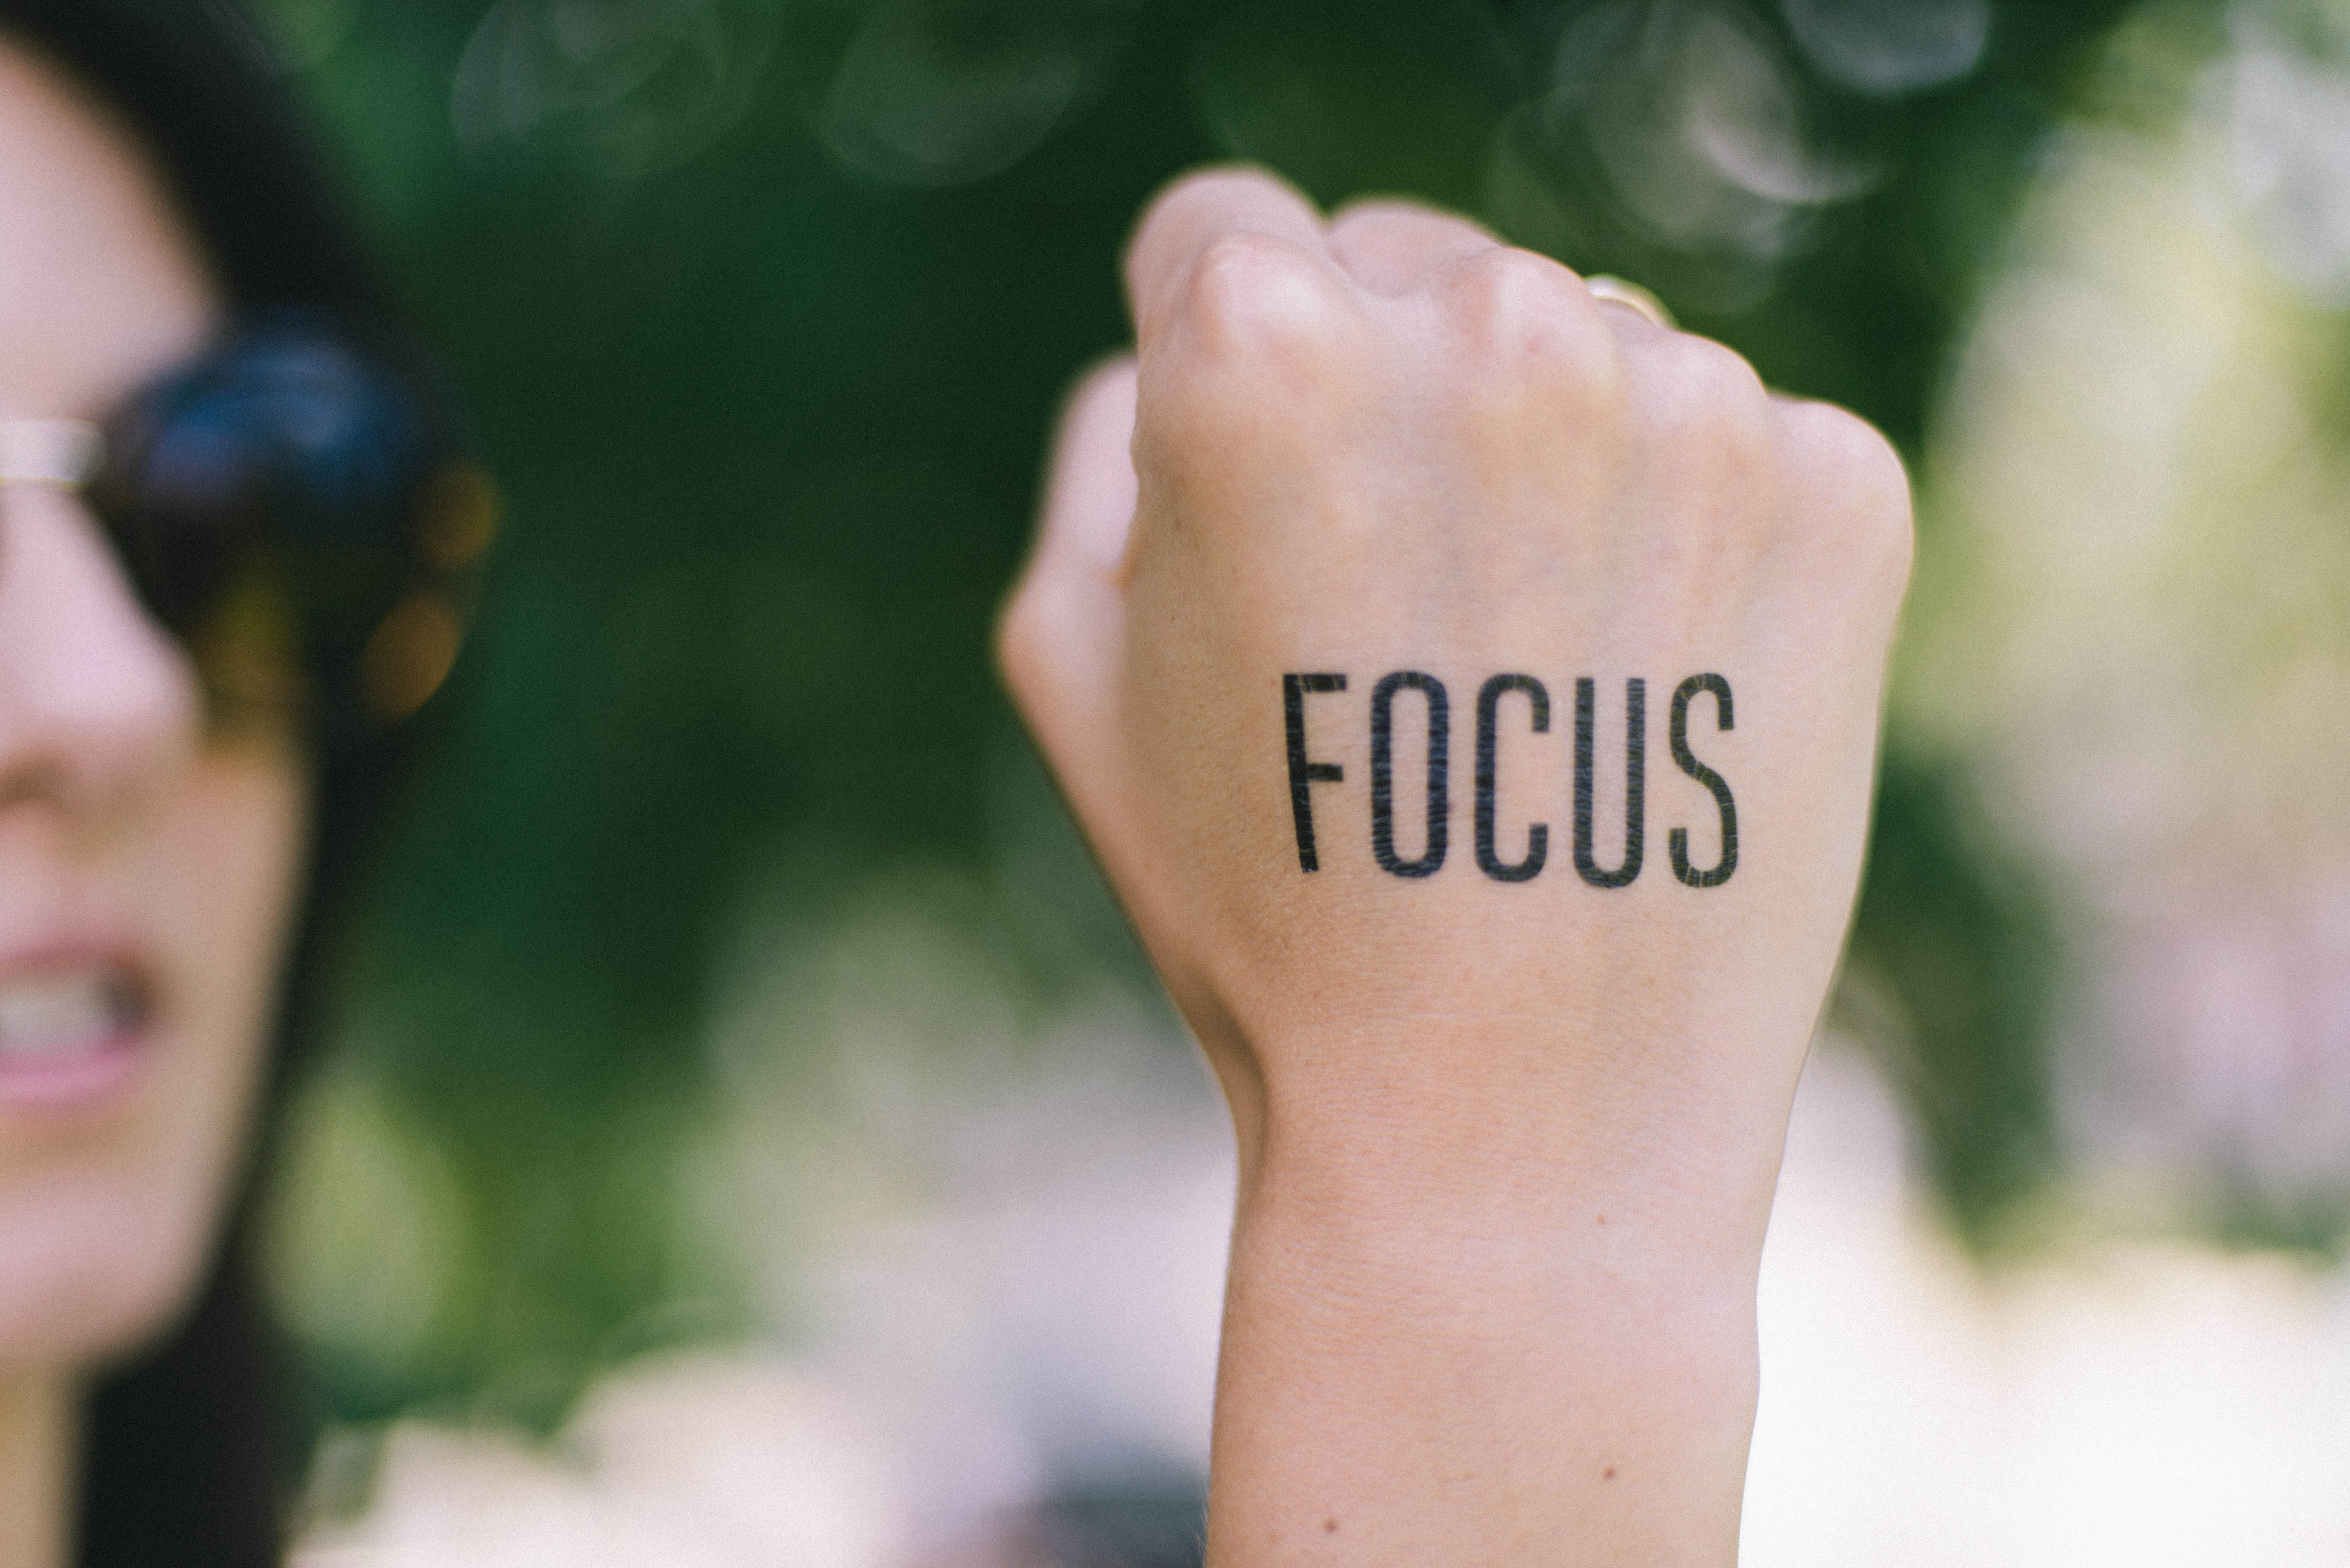 Don't Lose Focus - Featured Image